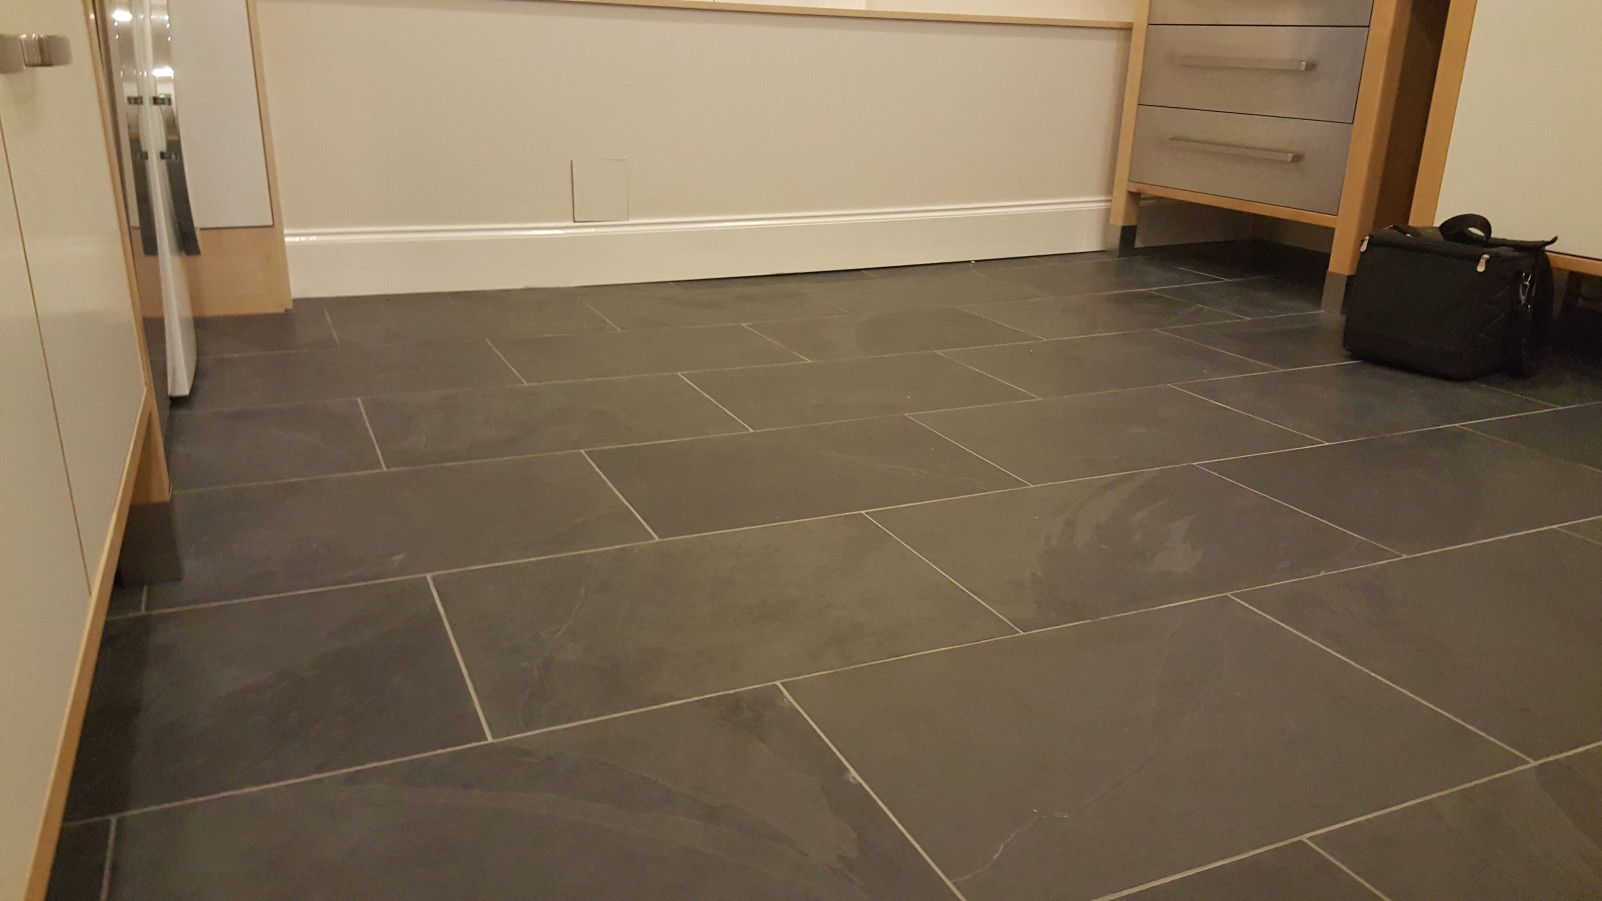 Kitchen Tiles Edinburgh perfect house | tiling a kitchen , northumberland street edinburgh